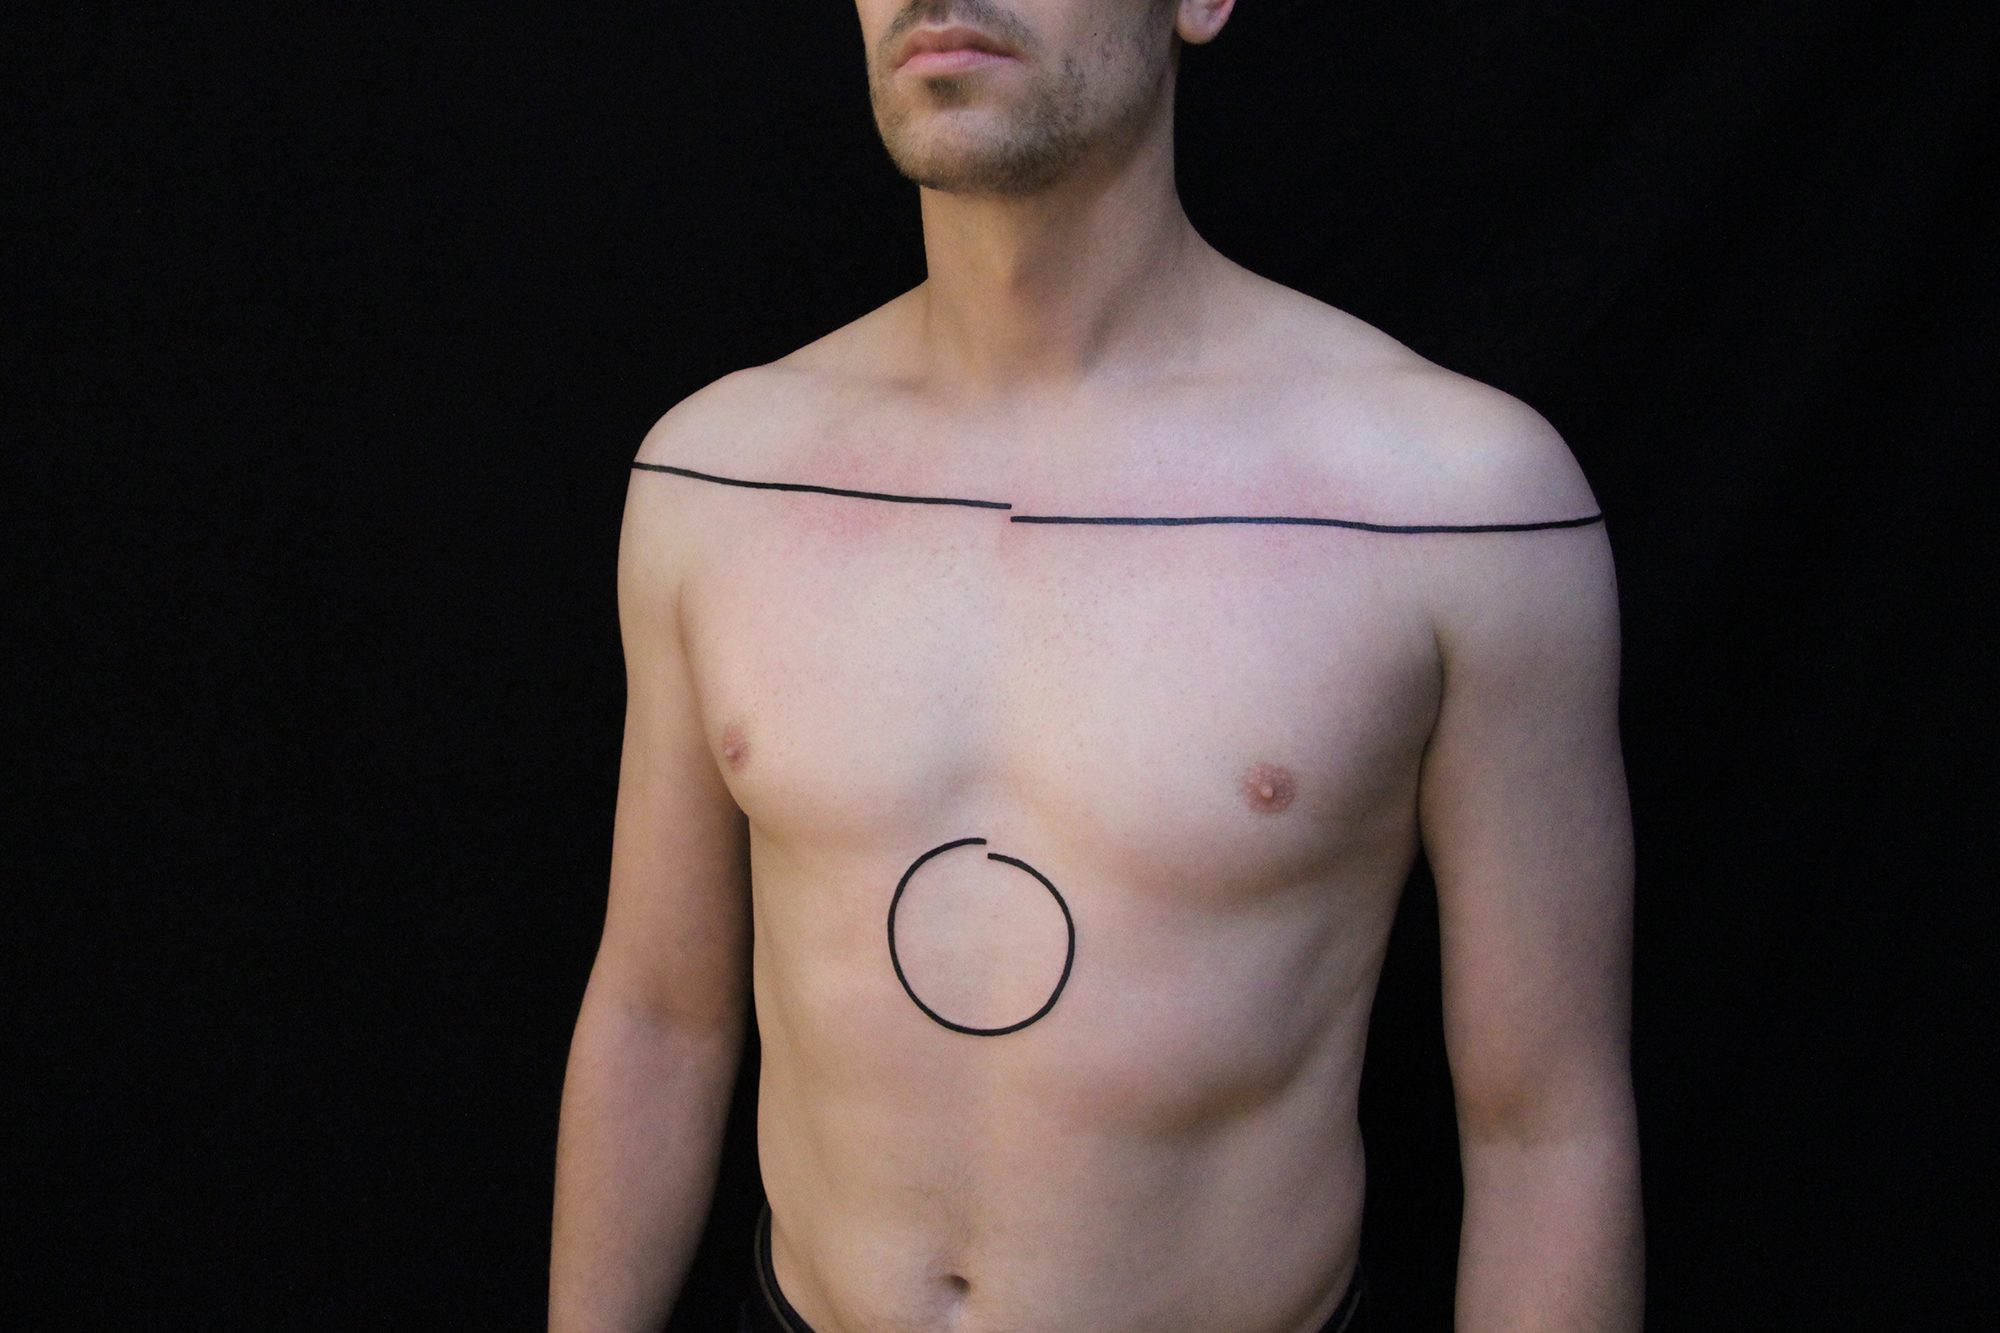 line and circle tattoos by chaim machlev. photo © erik weiss